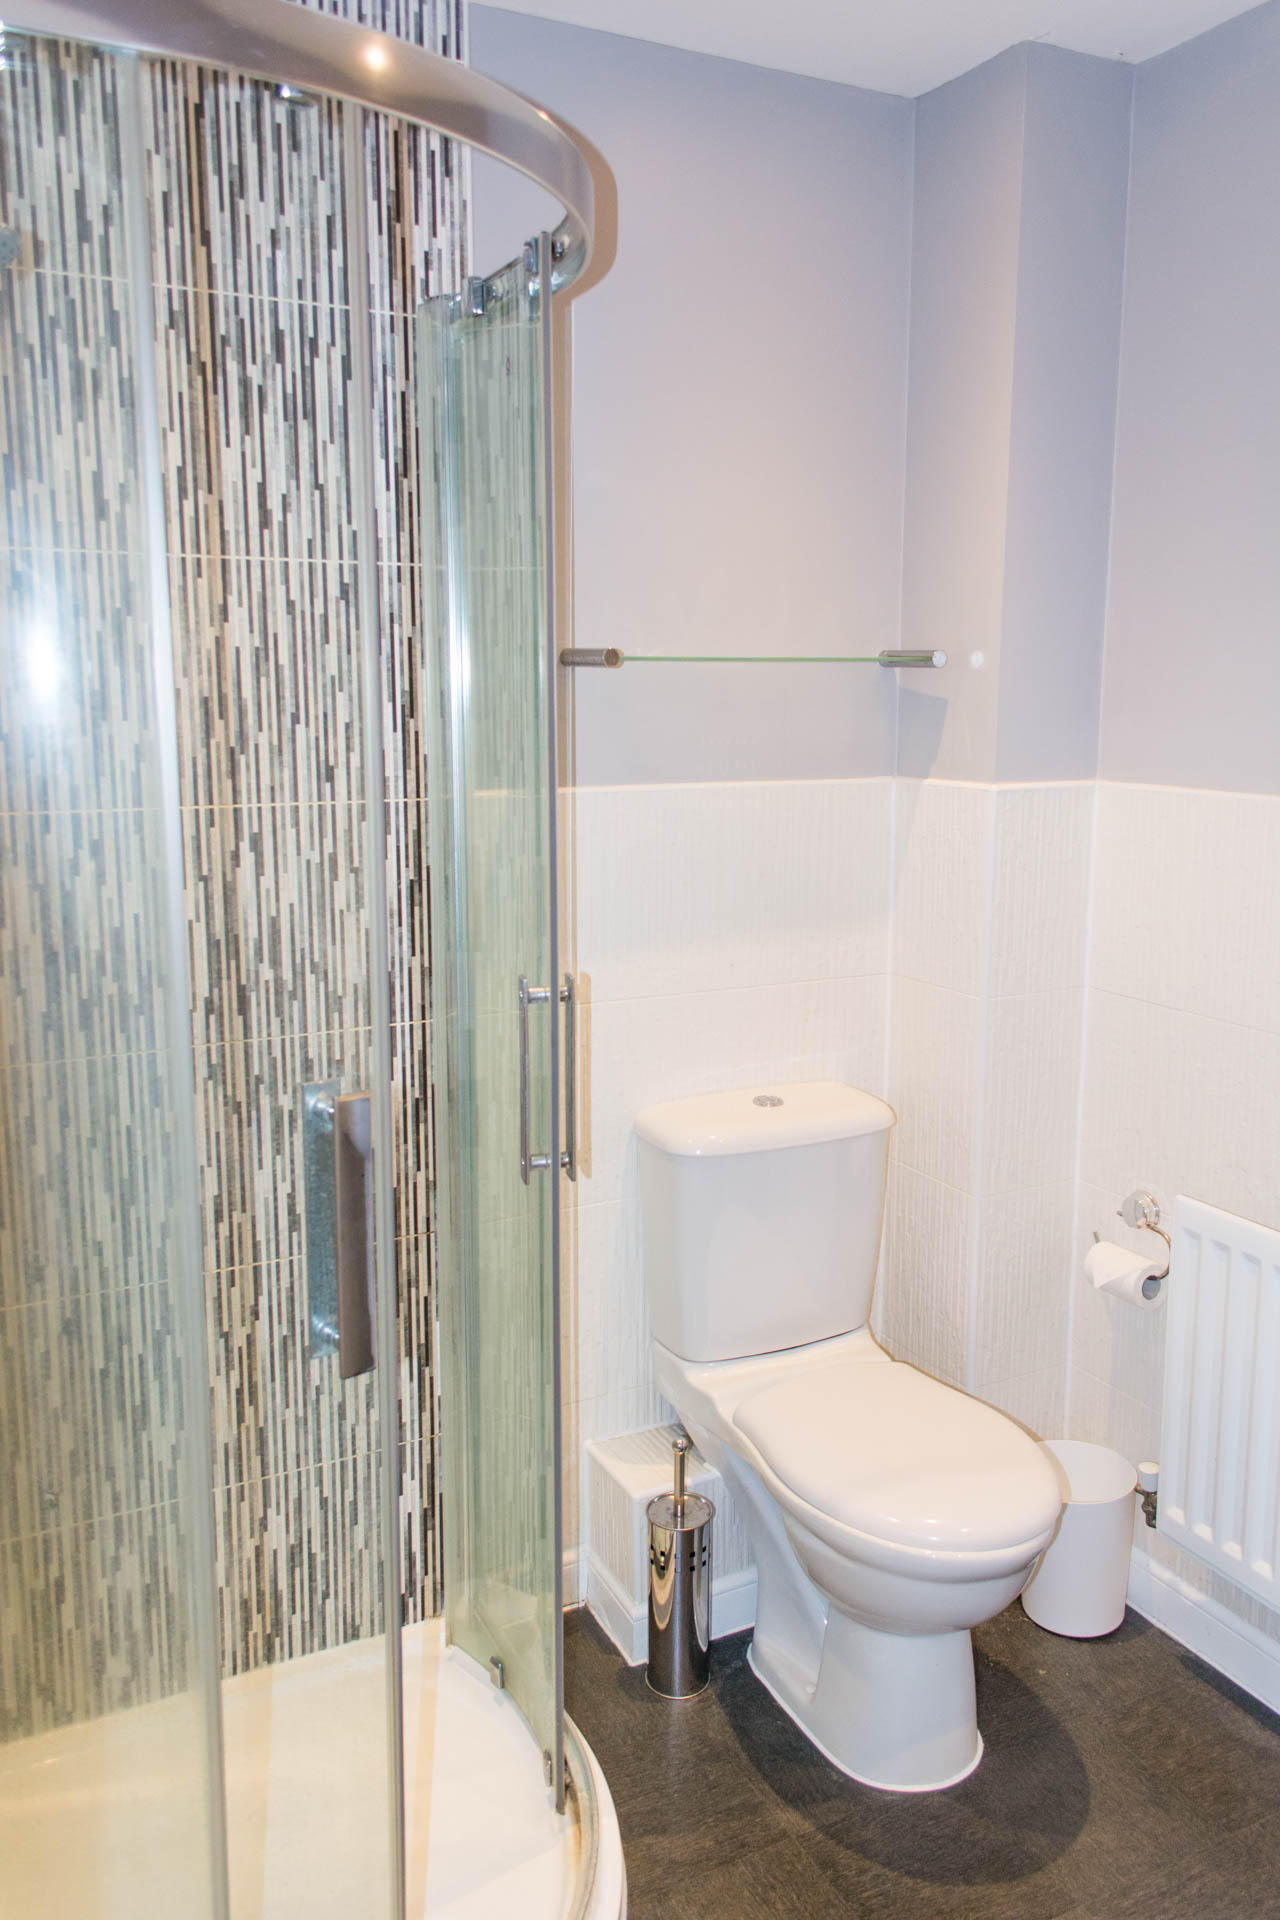 Ensuite bathroom with shower cubicle.